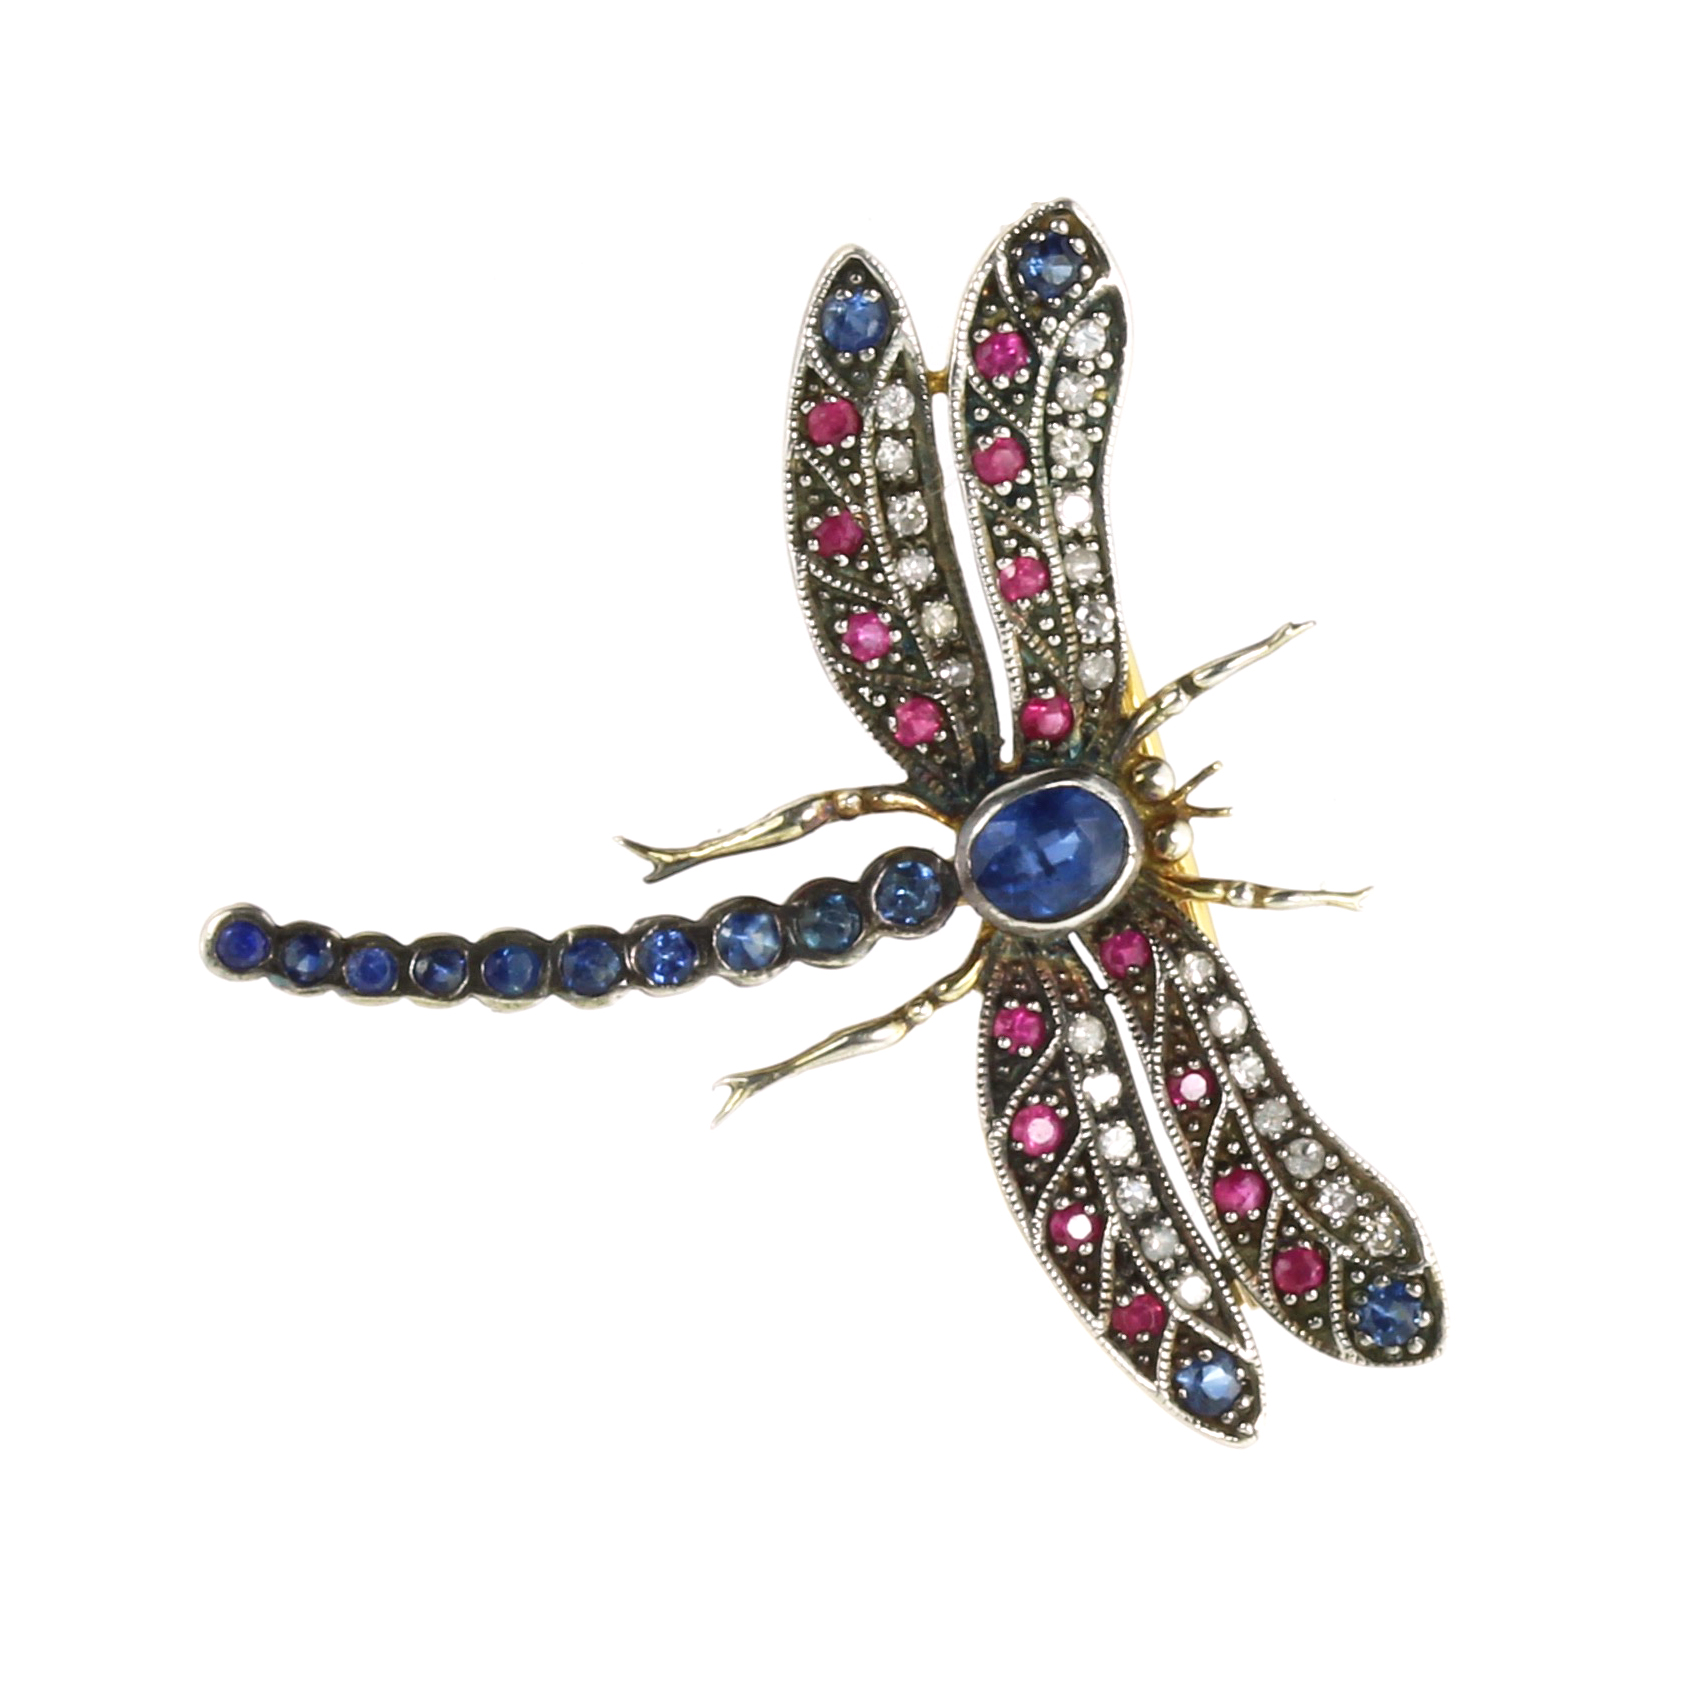 Los 45 - A SAPPHIRE, RUBY AND DIAMOND DRAGONFLY BROOCH modeled as a dragonfly with its wings splayed, its